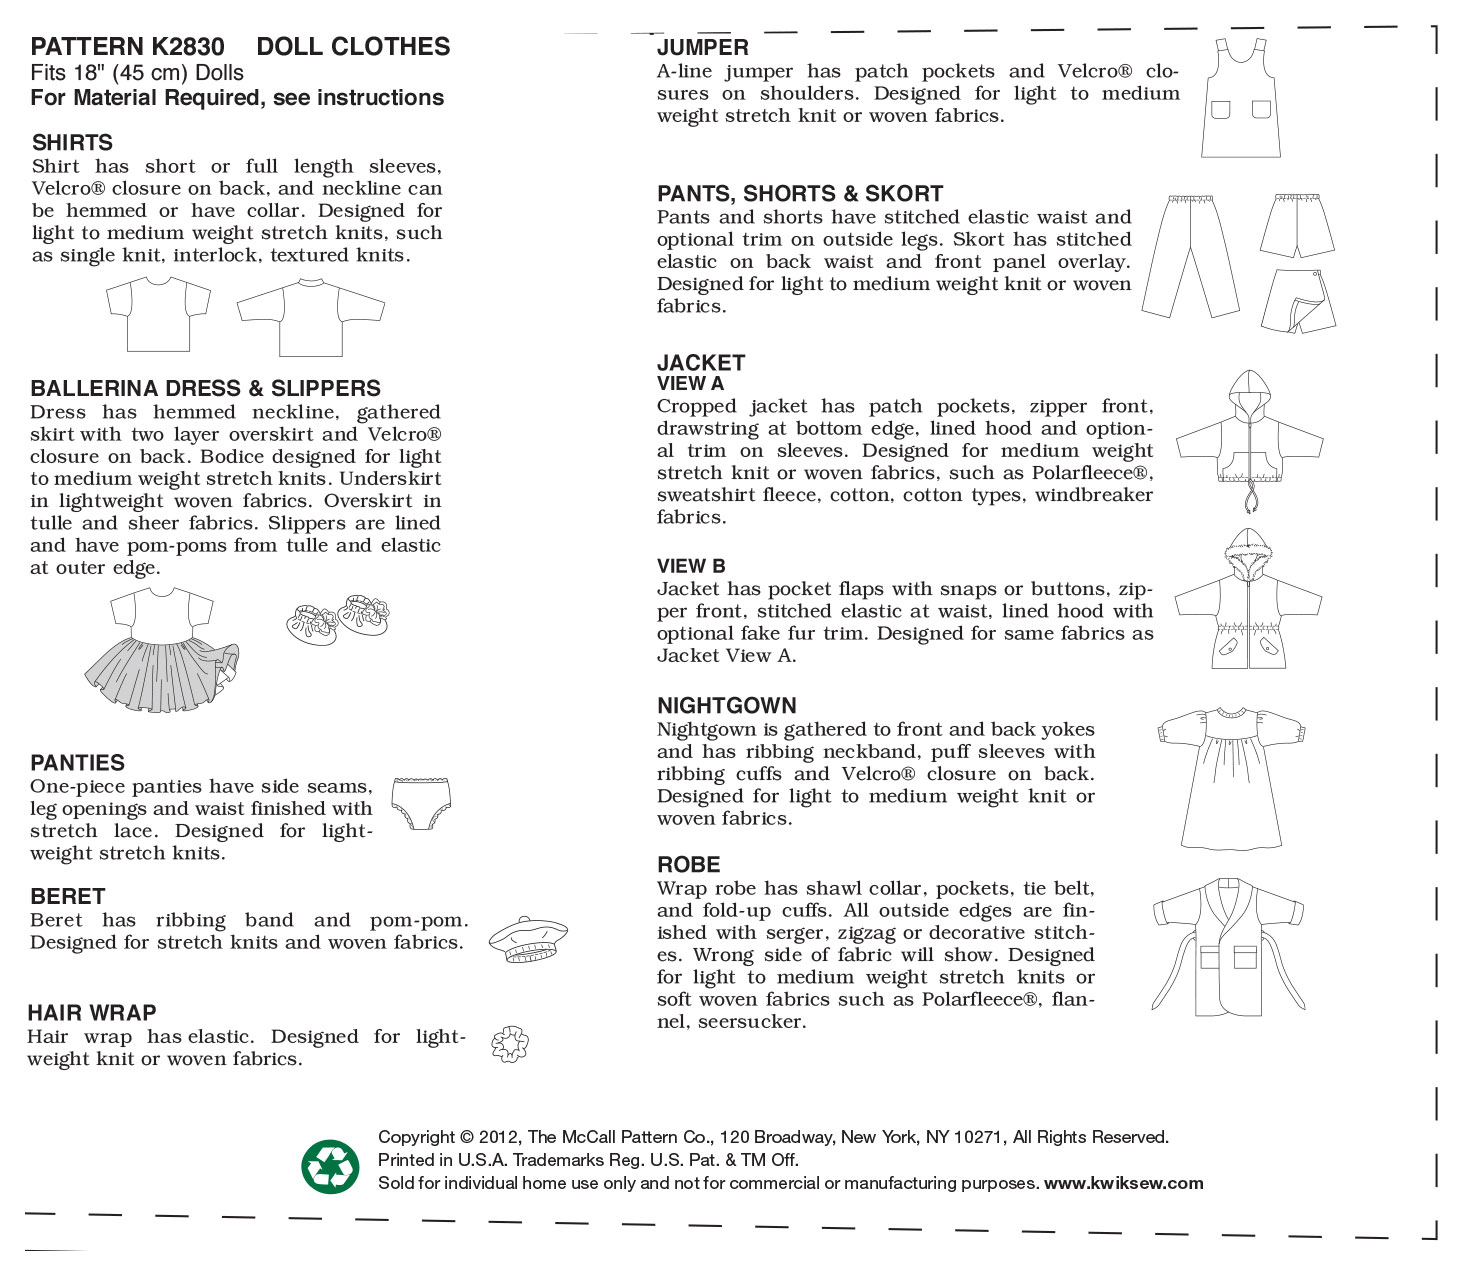 Kwik Sew Crafts Doll Clothes-K2830